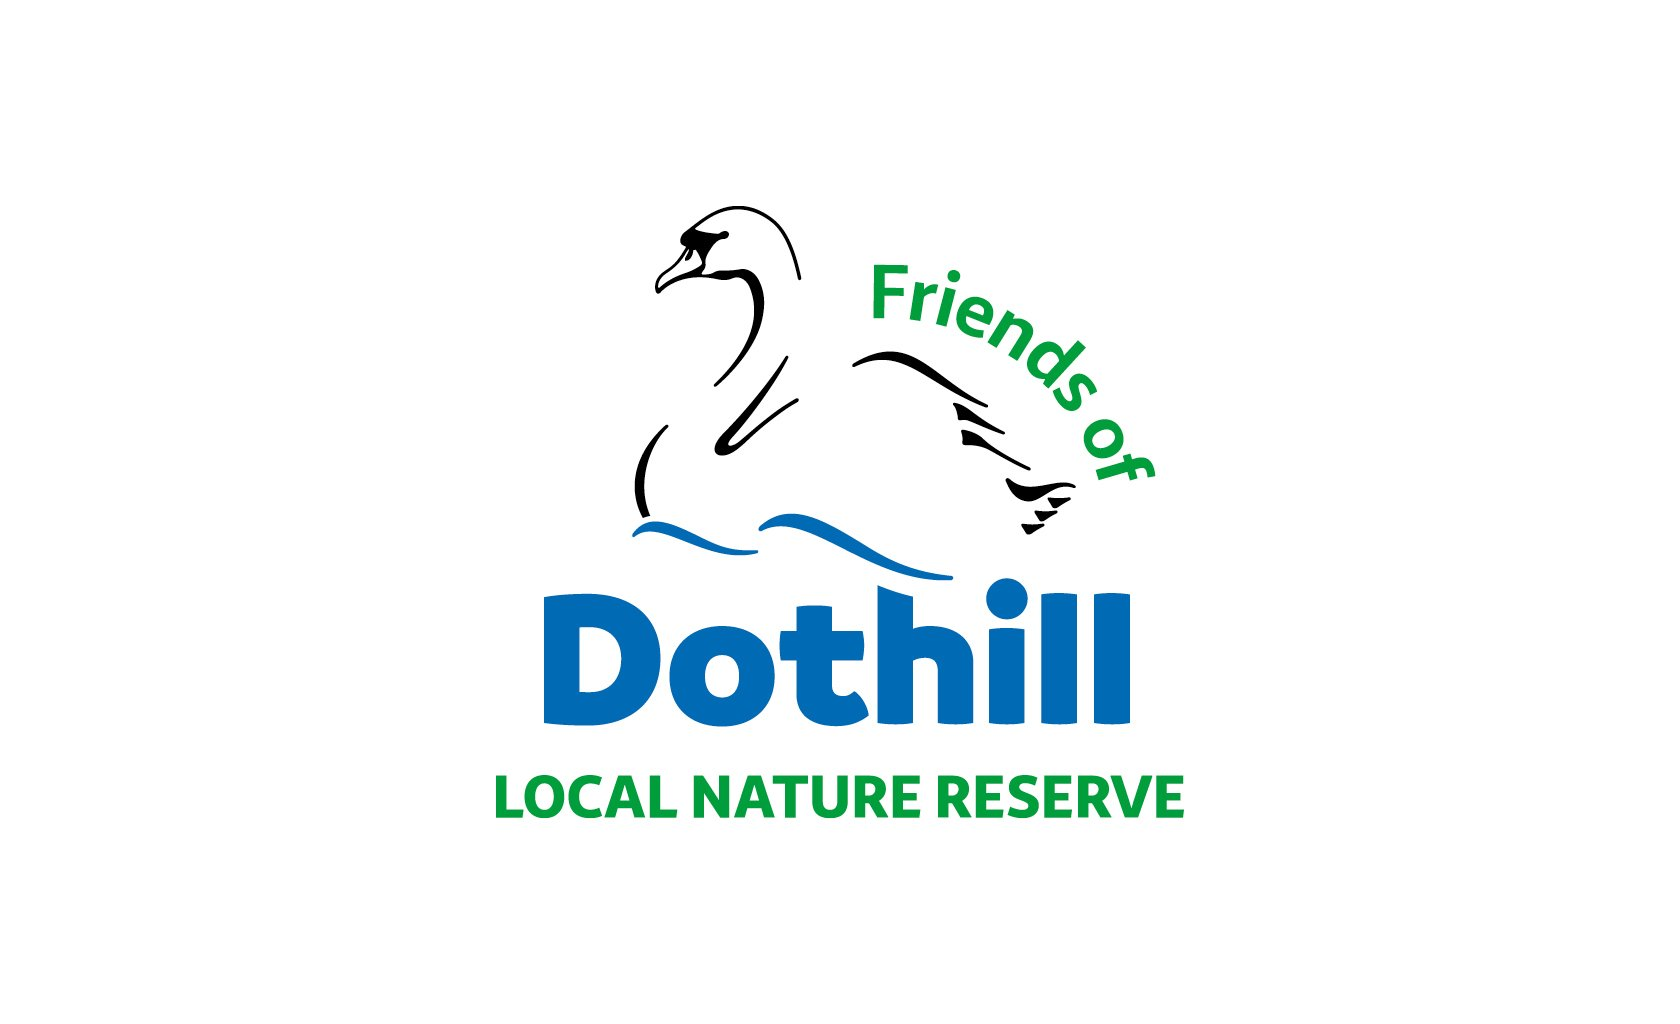 Dothill Local Nature Reserve